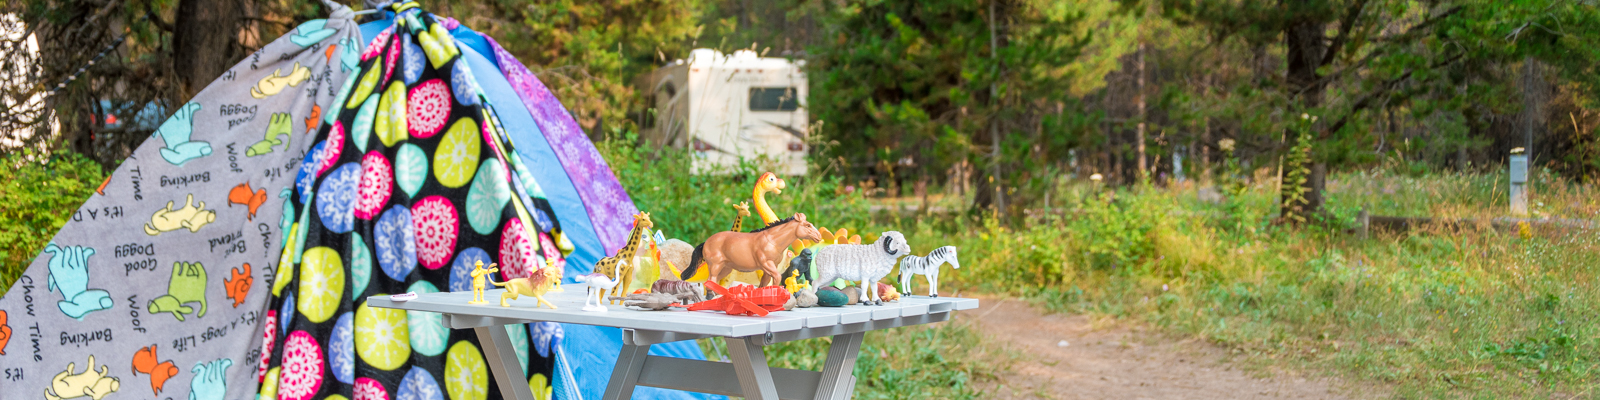 Kids table at the campground